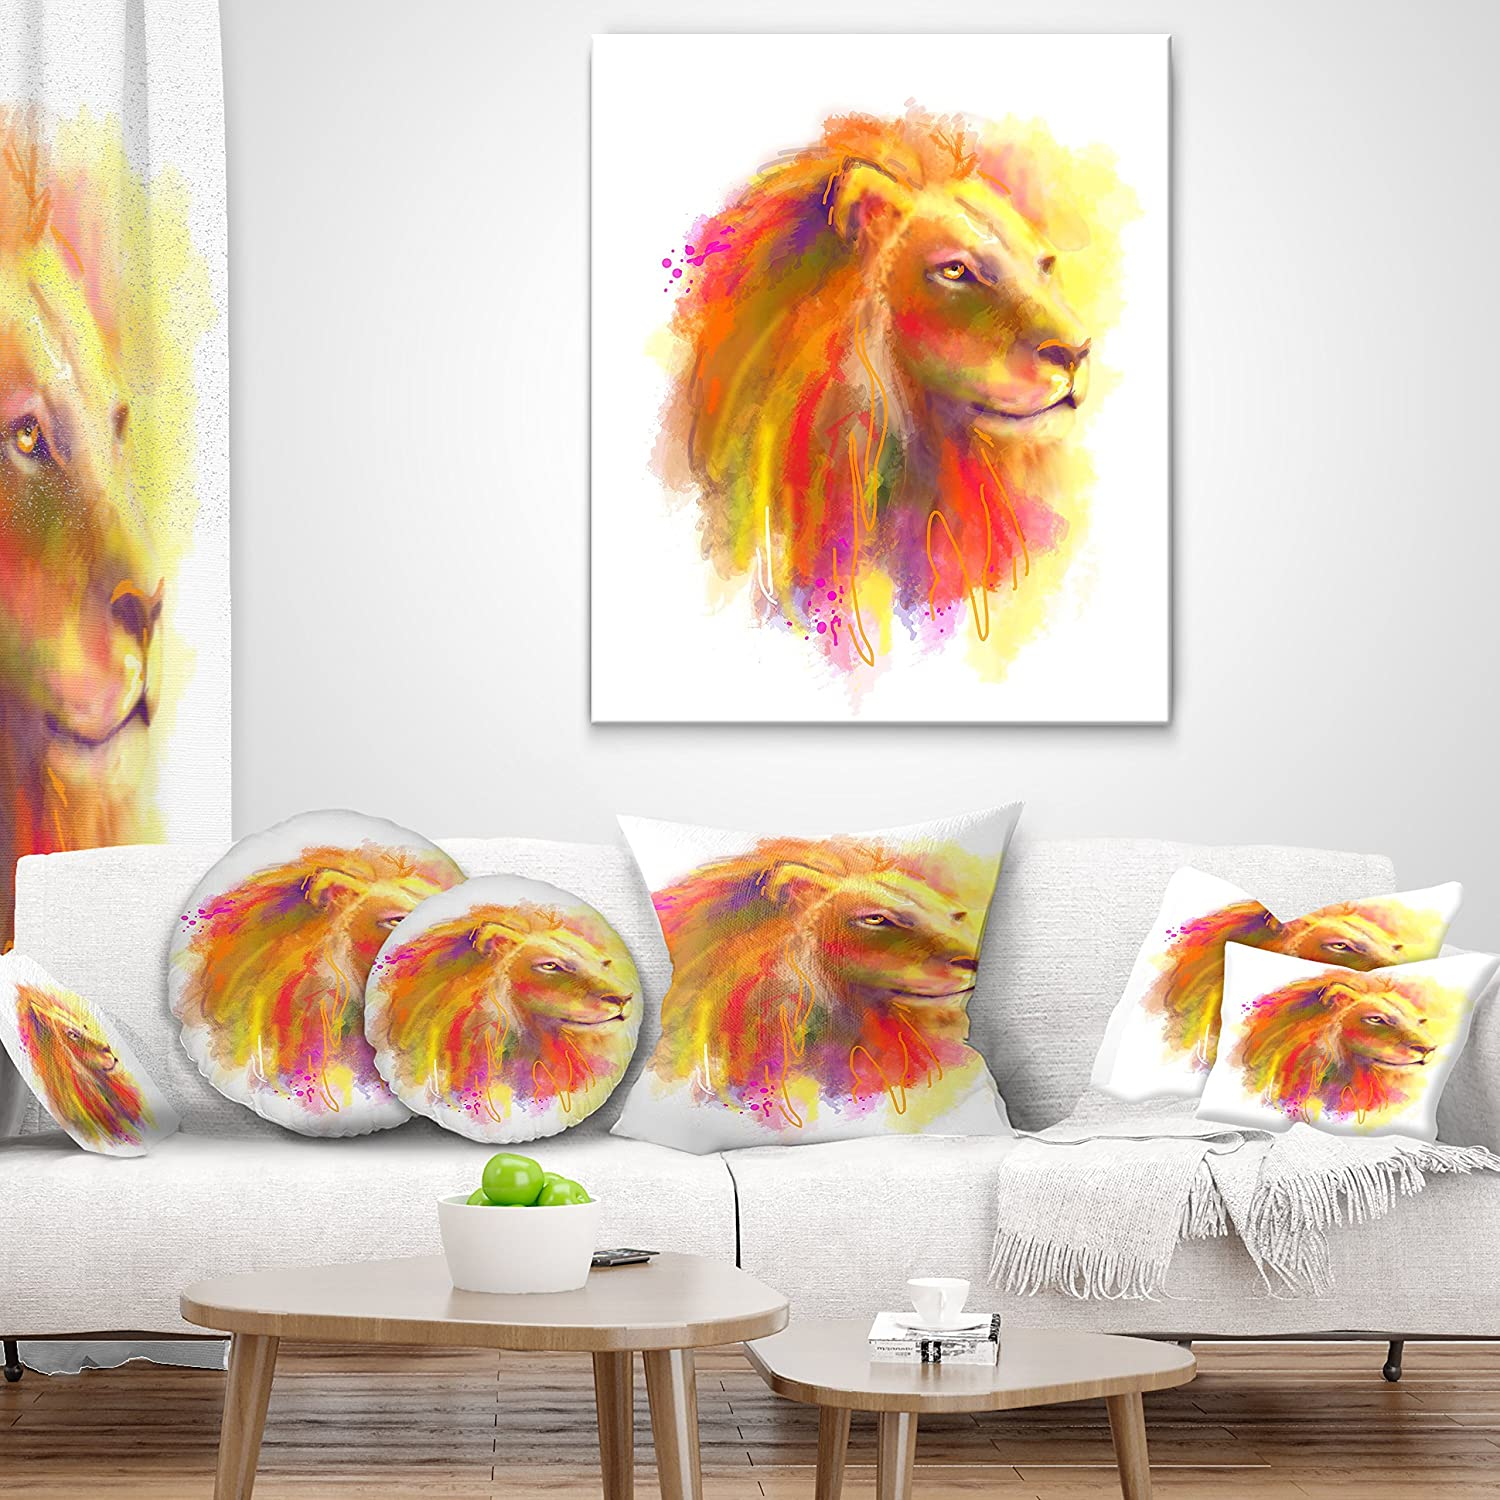 x 26 in. Designart CU8842-26-26 Lion with Colorful Mane Animal Throw Cushion Pillow Cover for Living Room 26 in Sofa